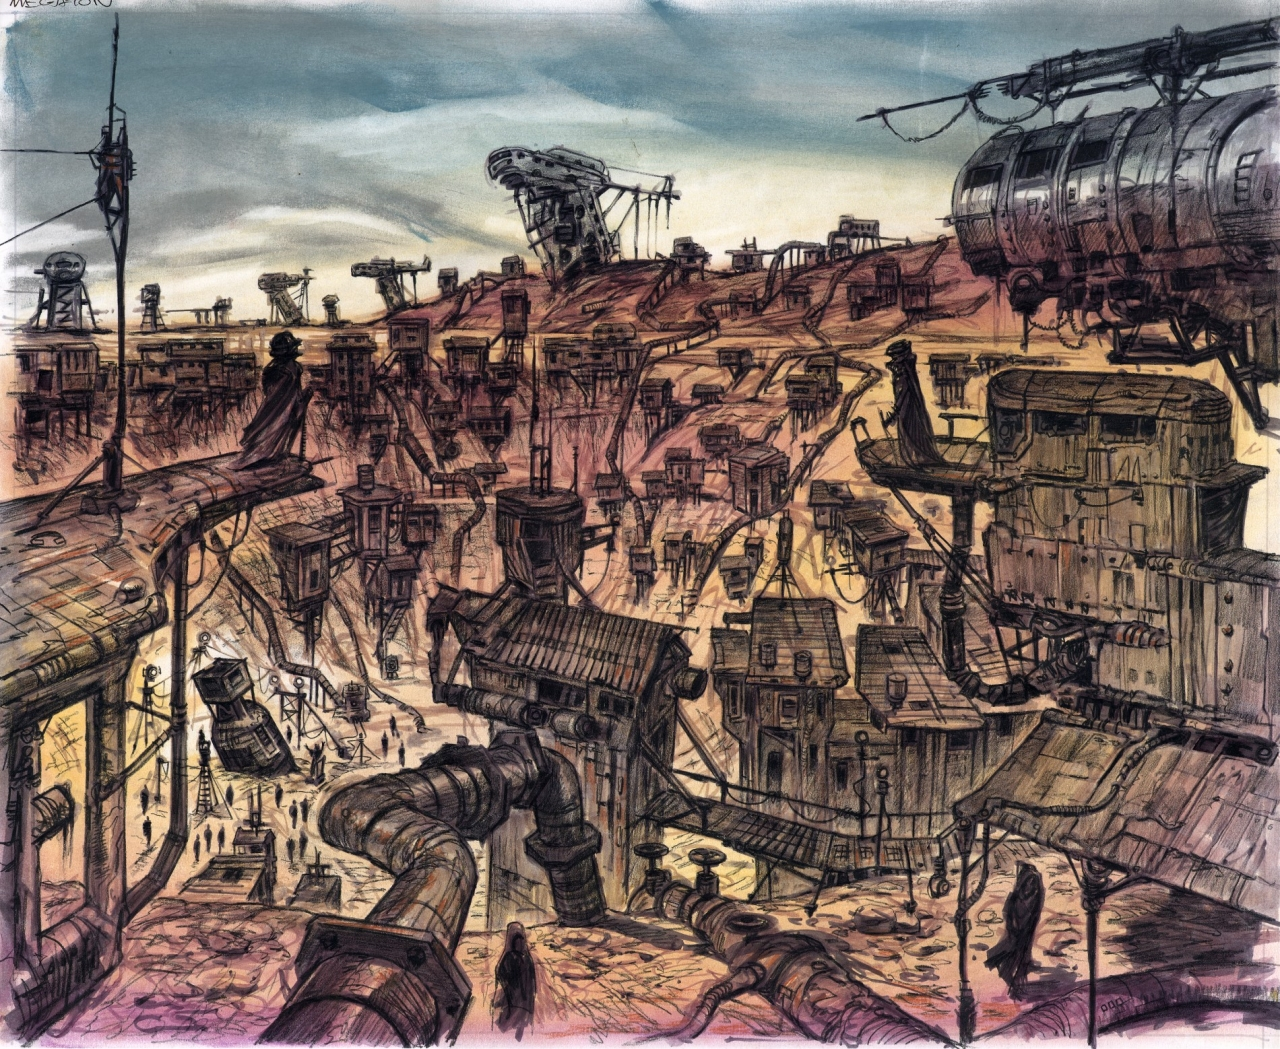 photo megaton in the album concept art images by brother none